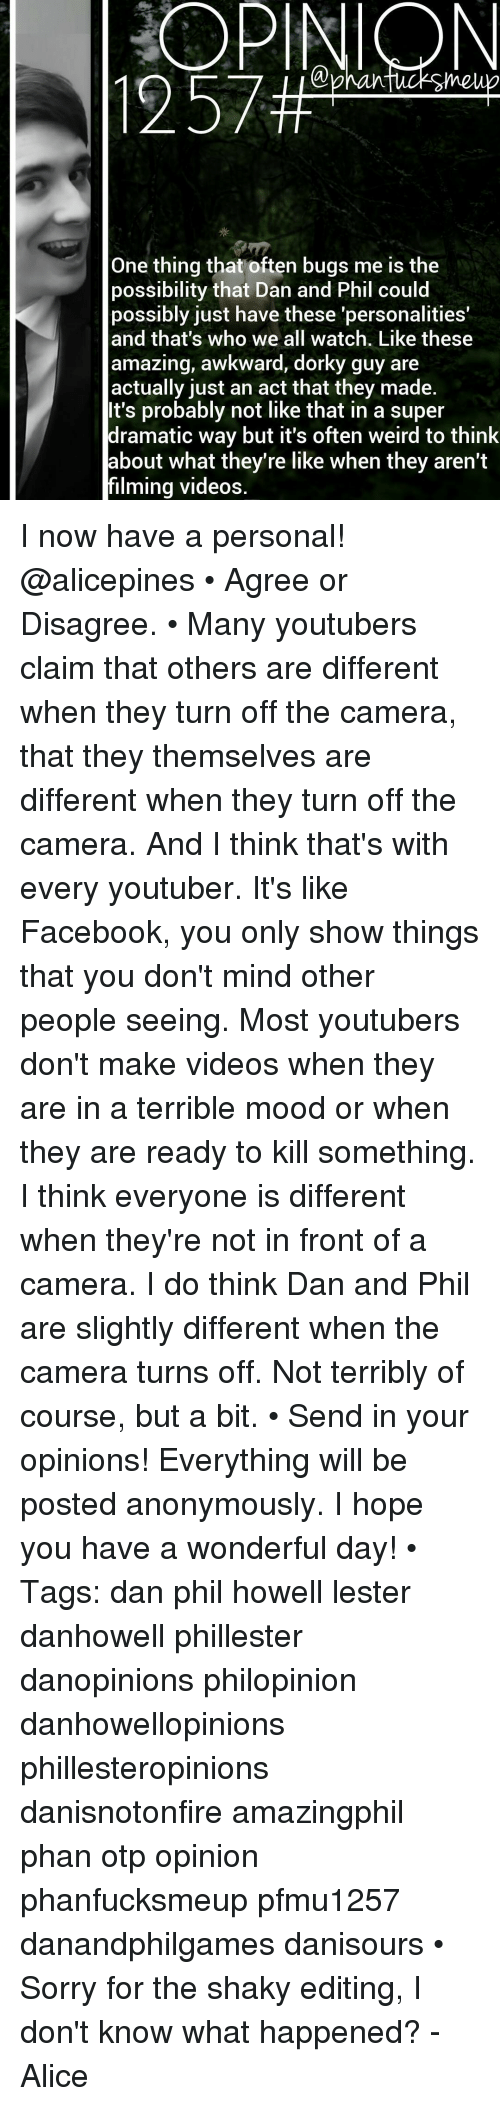 Terribler: OPINION  One thing that often bugs me is the  possibility that Dan and Phil could  possibly just have these 'personalities'  and that's who we all watch. Like these  amazing, awkward, dorky guy are  actually just an act that they made.  It's probably not like that in a super  dramatic way but it's often weird to think  about what they're like when they aren't  filming videos I now have a personal! @alicepines • Agree or Disagree. • Many youtubers claim that others are different when they turn off the camera, that they themselves are different when they turn off the camera. And I think that's with every youtuber. It's like Facebook, you only show things that you don't mind other people seeing. Most youtubers don't make videos when they are in a terrible mood or when they are ready to kill something. I think everyone is different when they're not in front of a camera. I do think Dan and Phil are slightly different when the camera turns off. Not terribly of course, but a bit. • Send in your opinions! Everything will be posted anonymously. I hope you have a wonderful day! • Tags: dan phil howell lester danhowell phillester danopinions philopinion danhowellopinions phillesteropinions danisnotonfire amazingphil phan otp opinion phanfucksmeup pfmu1257 danandphilgames danisours • Sorry for the shaky editing, I don't know what happened? -Alice